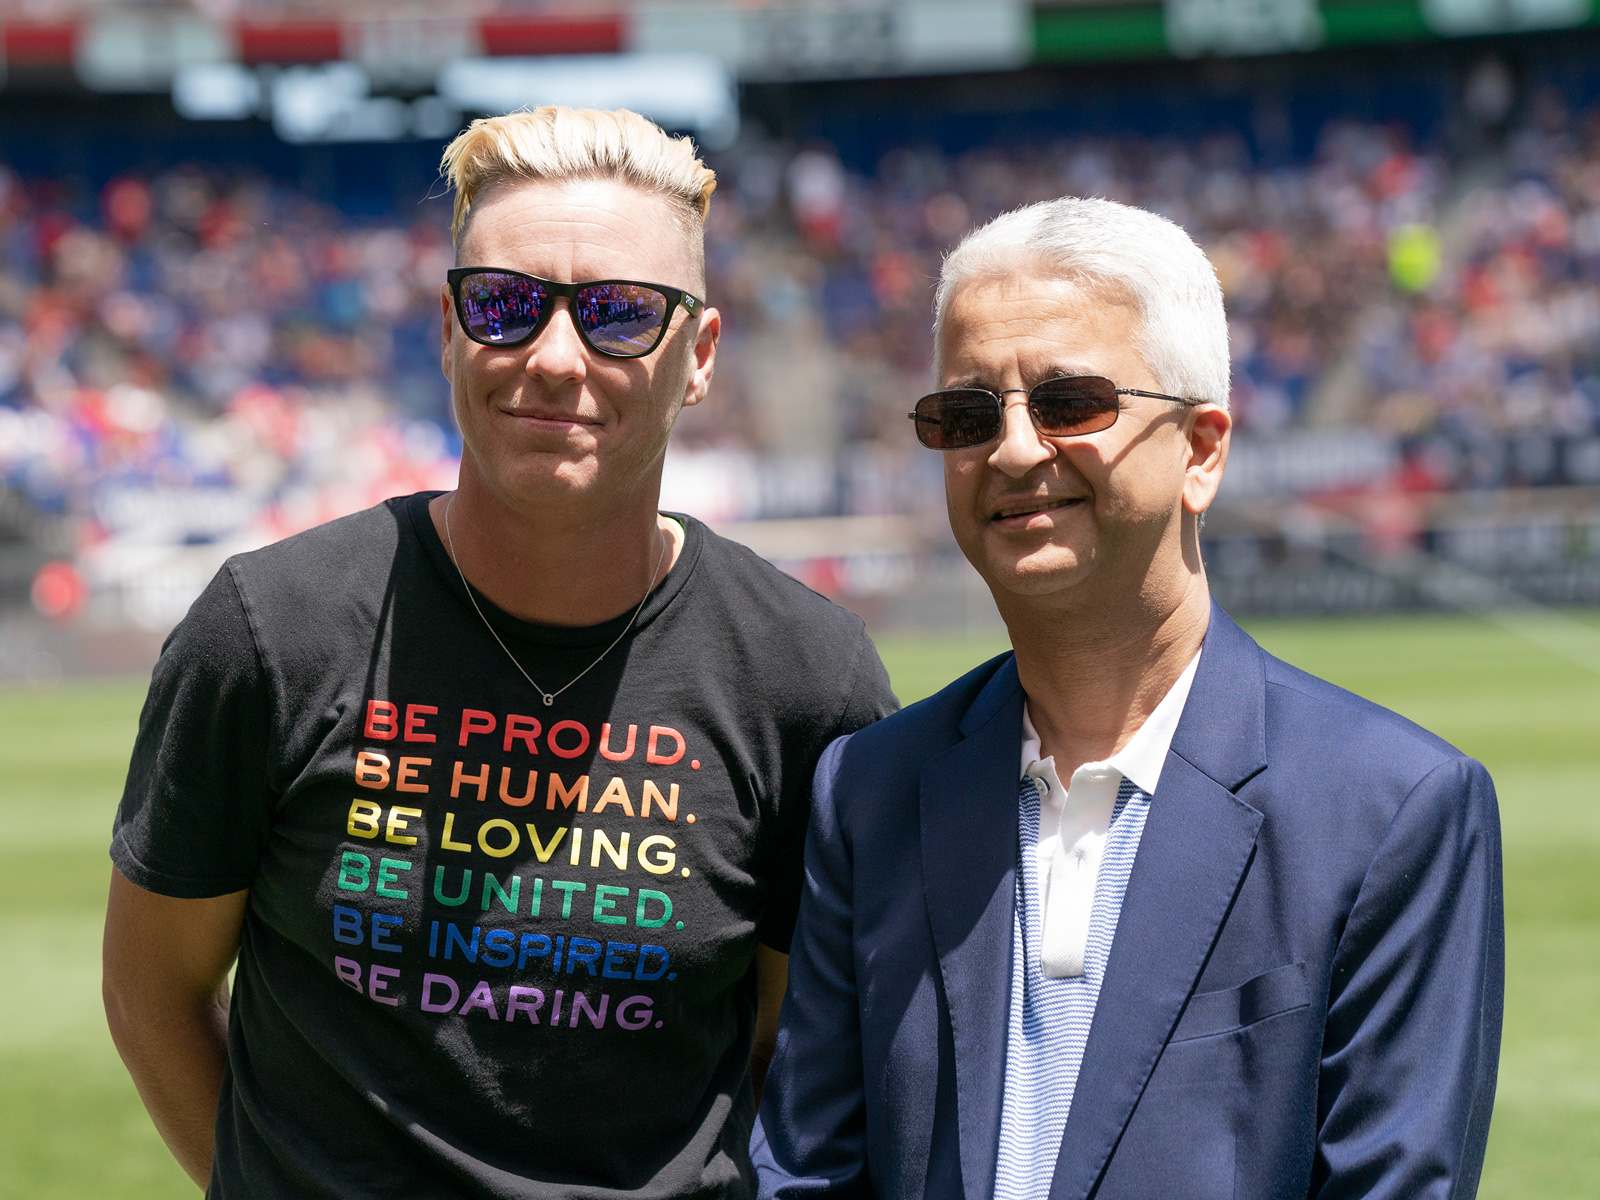 Abby Wambach and Sunil Gulati will be inducted into the National Soccer Hall of Fame